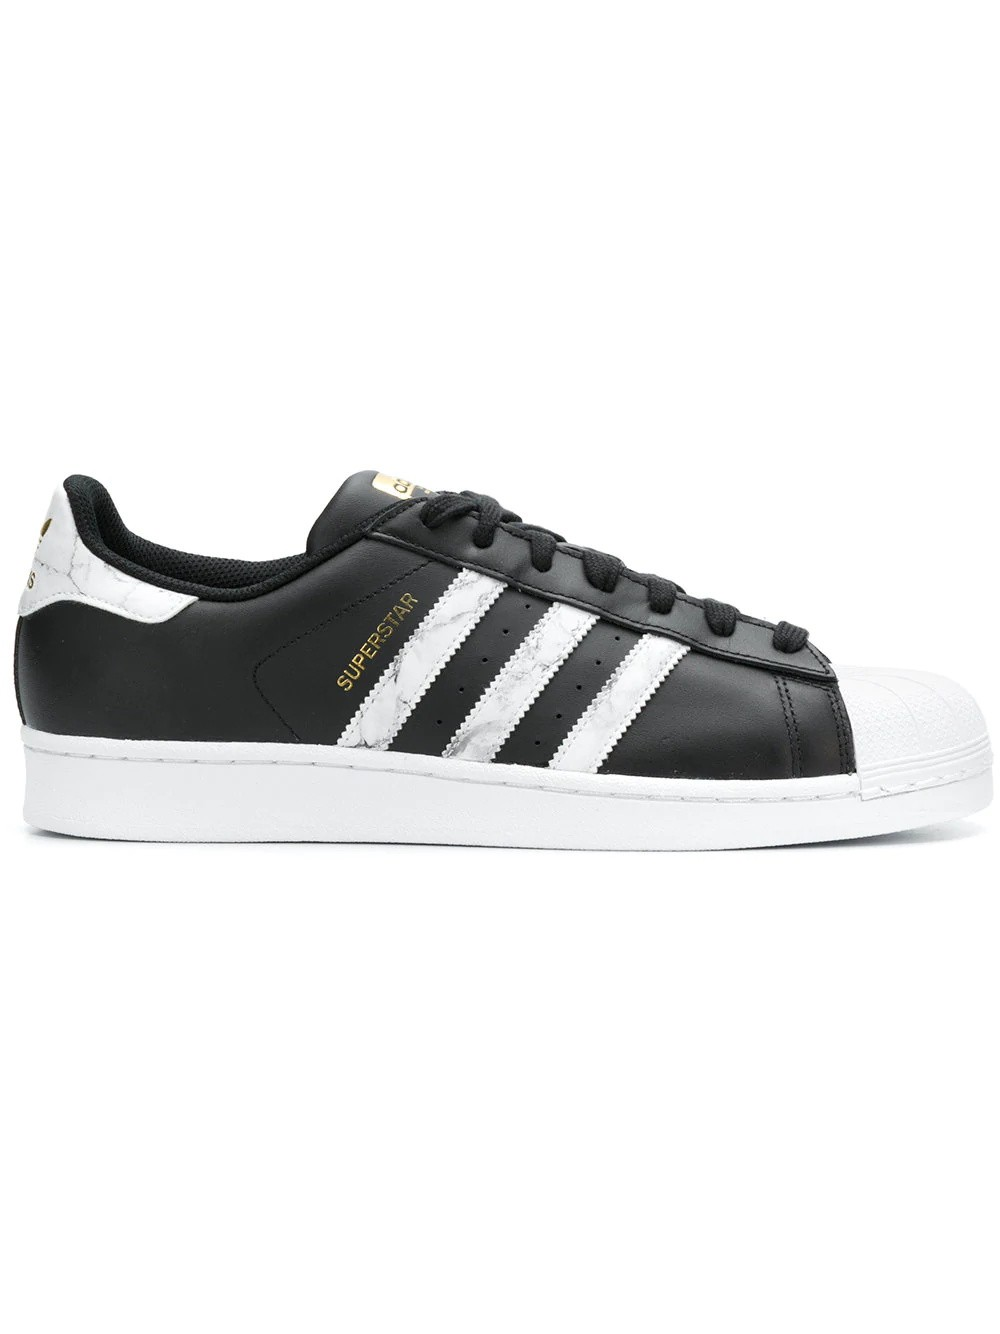 Adidas Originals Superstar Sneakers Hombre Negras Blancas D96800